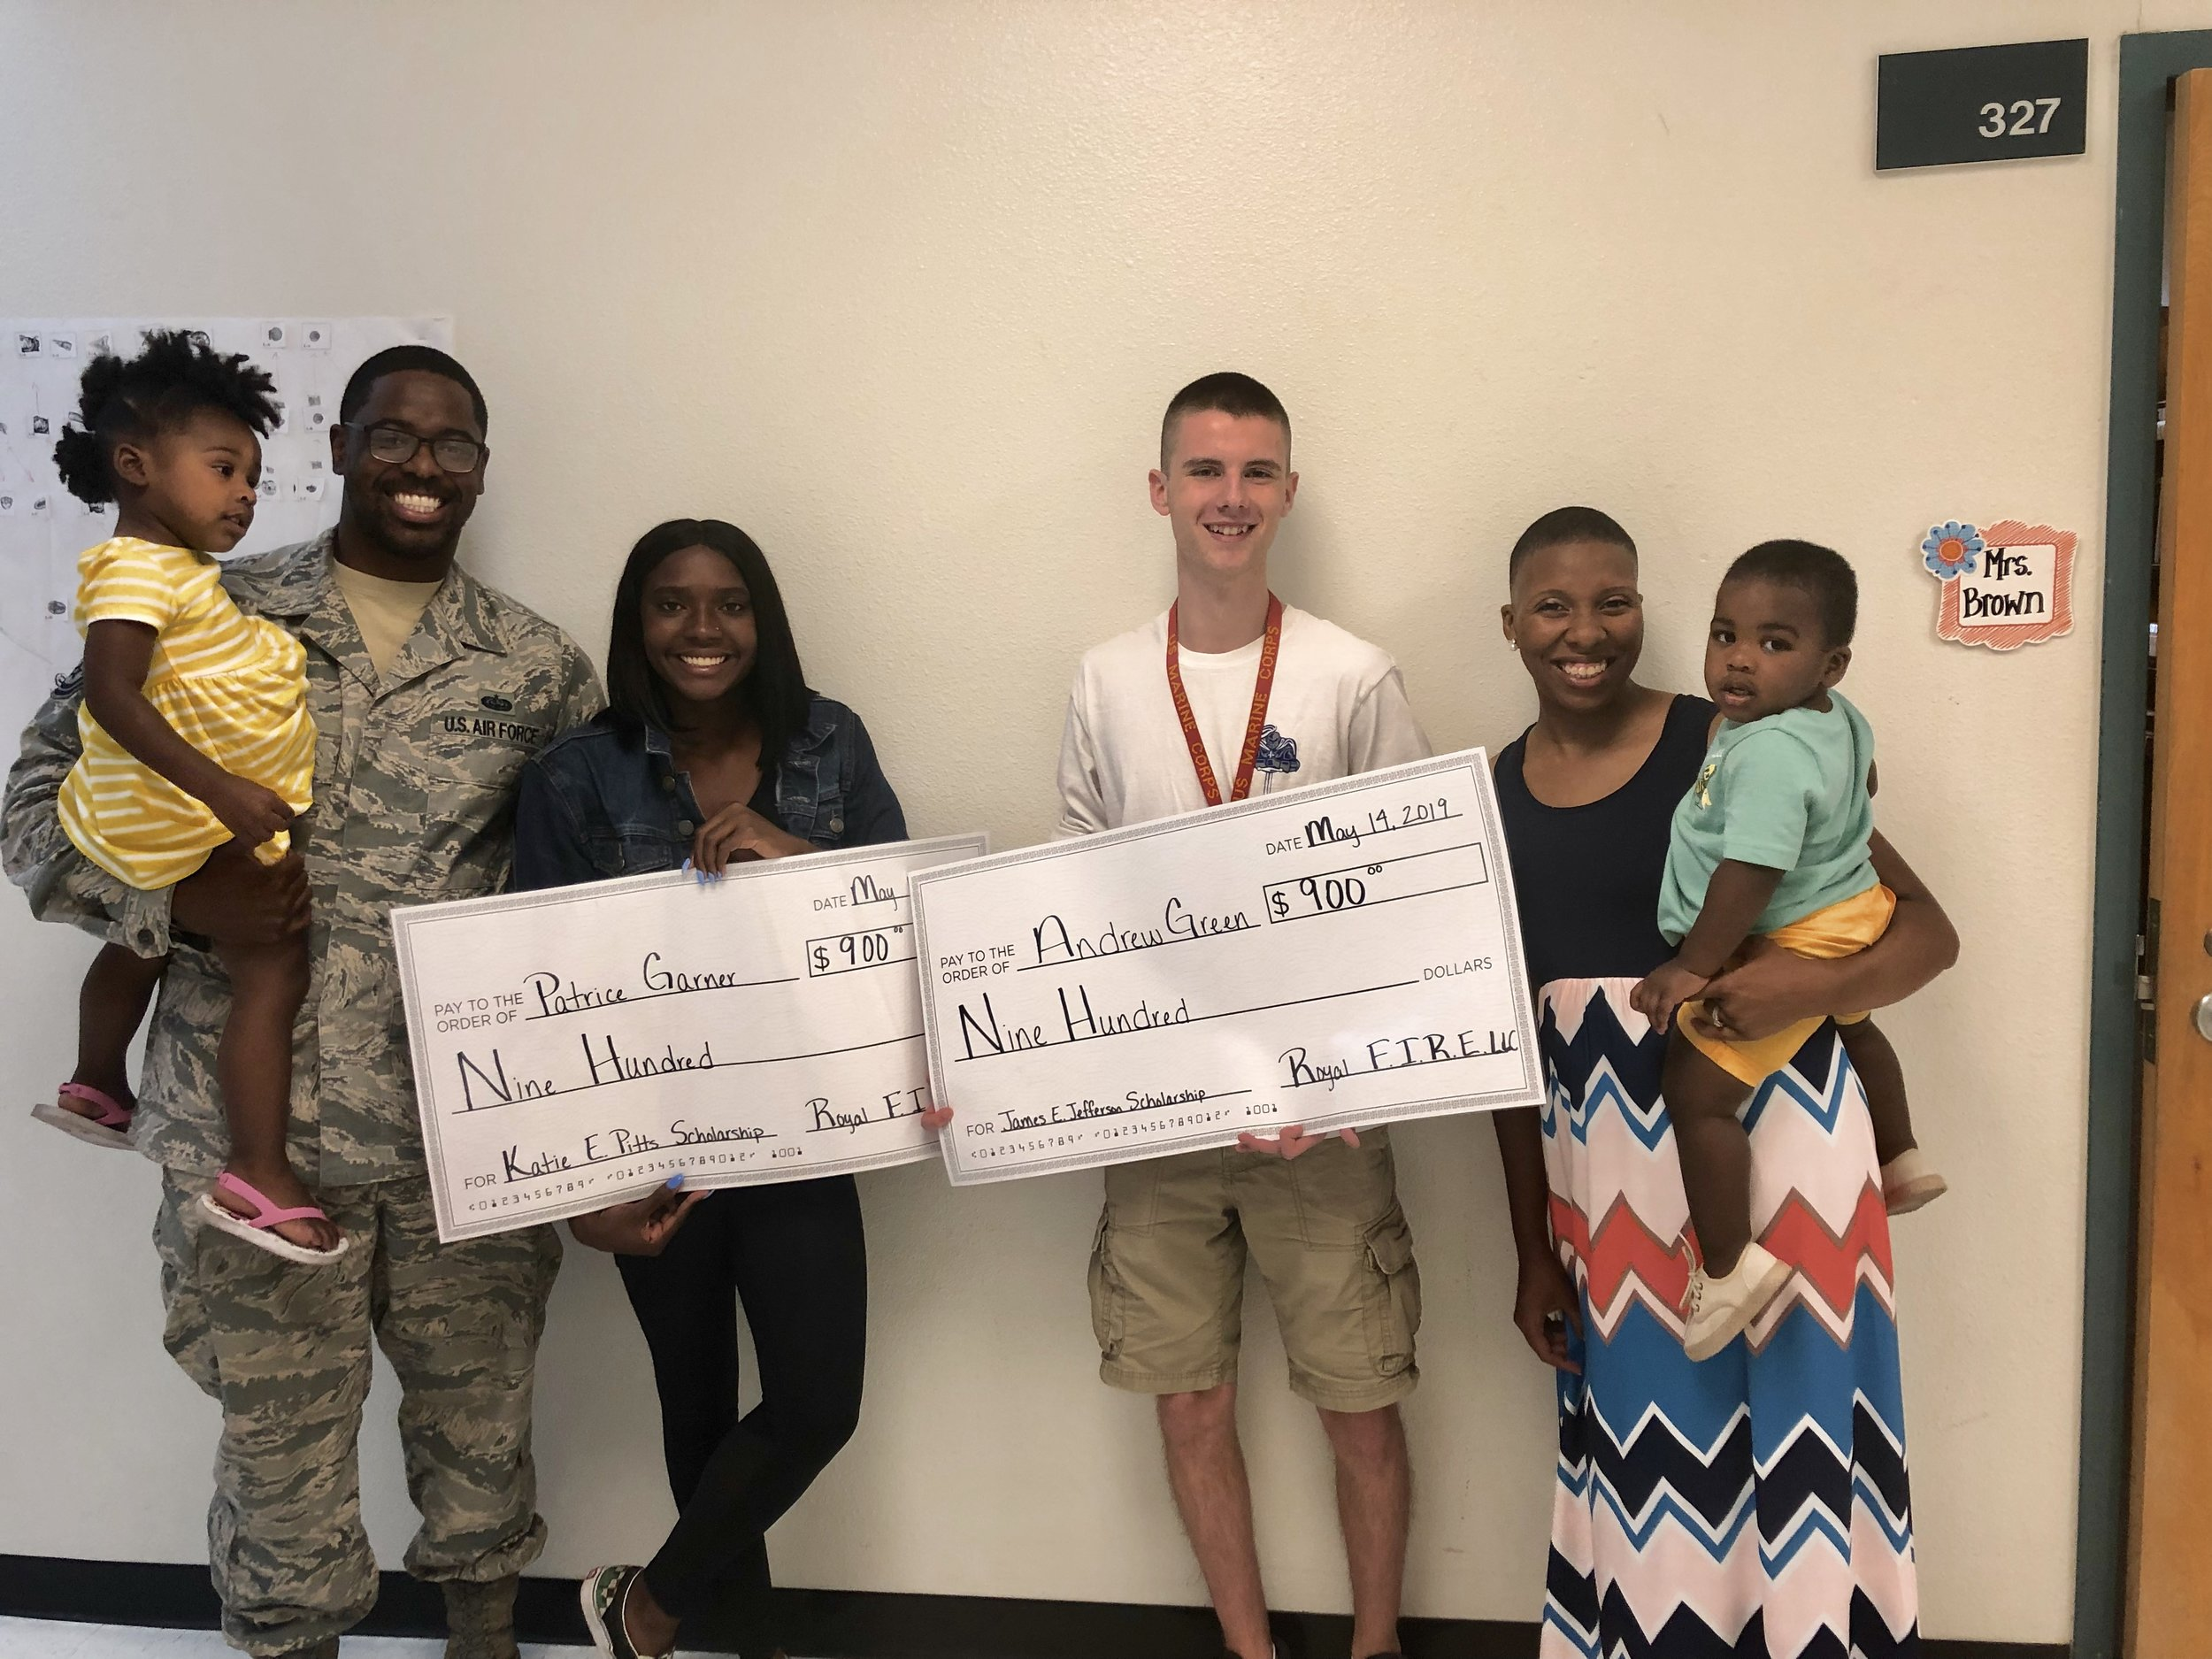 2019 Winners Andrew Green & Patrice Garner - WESTVIEW HIGH SCHOOL, ARIZONA$1,800 DONATED AND RAISED!! THANK YOU EVERYONE WHO DONATED, GOD BLESS